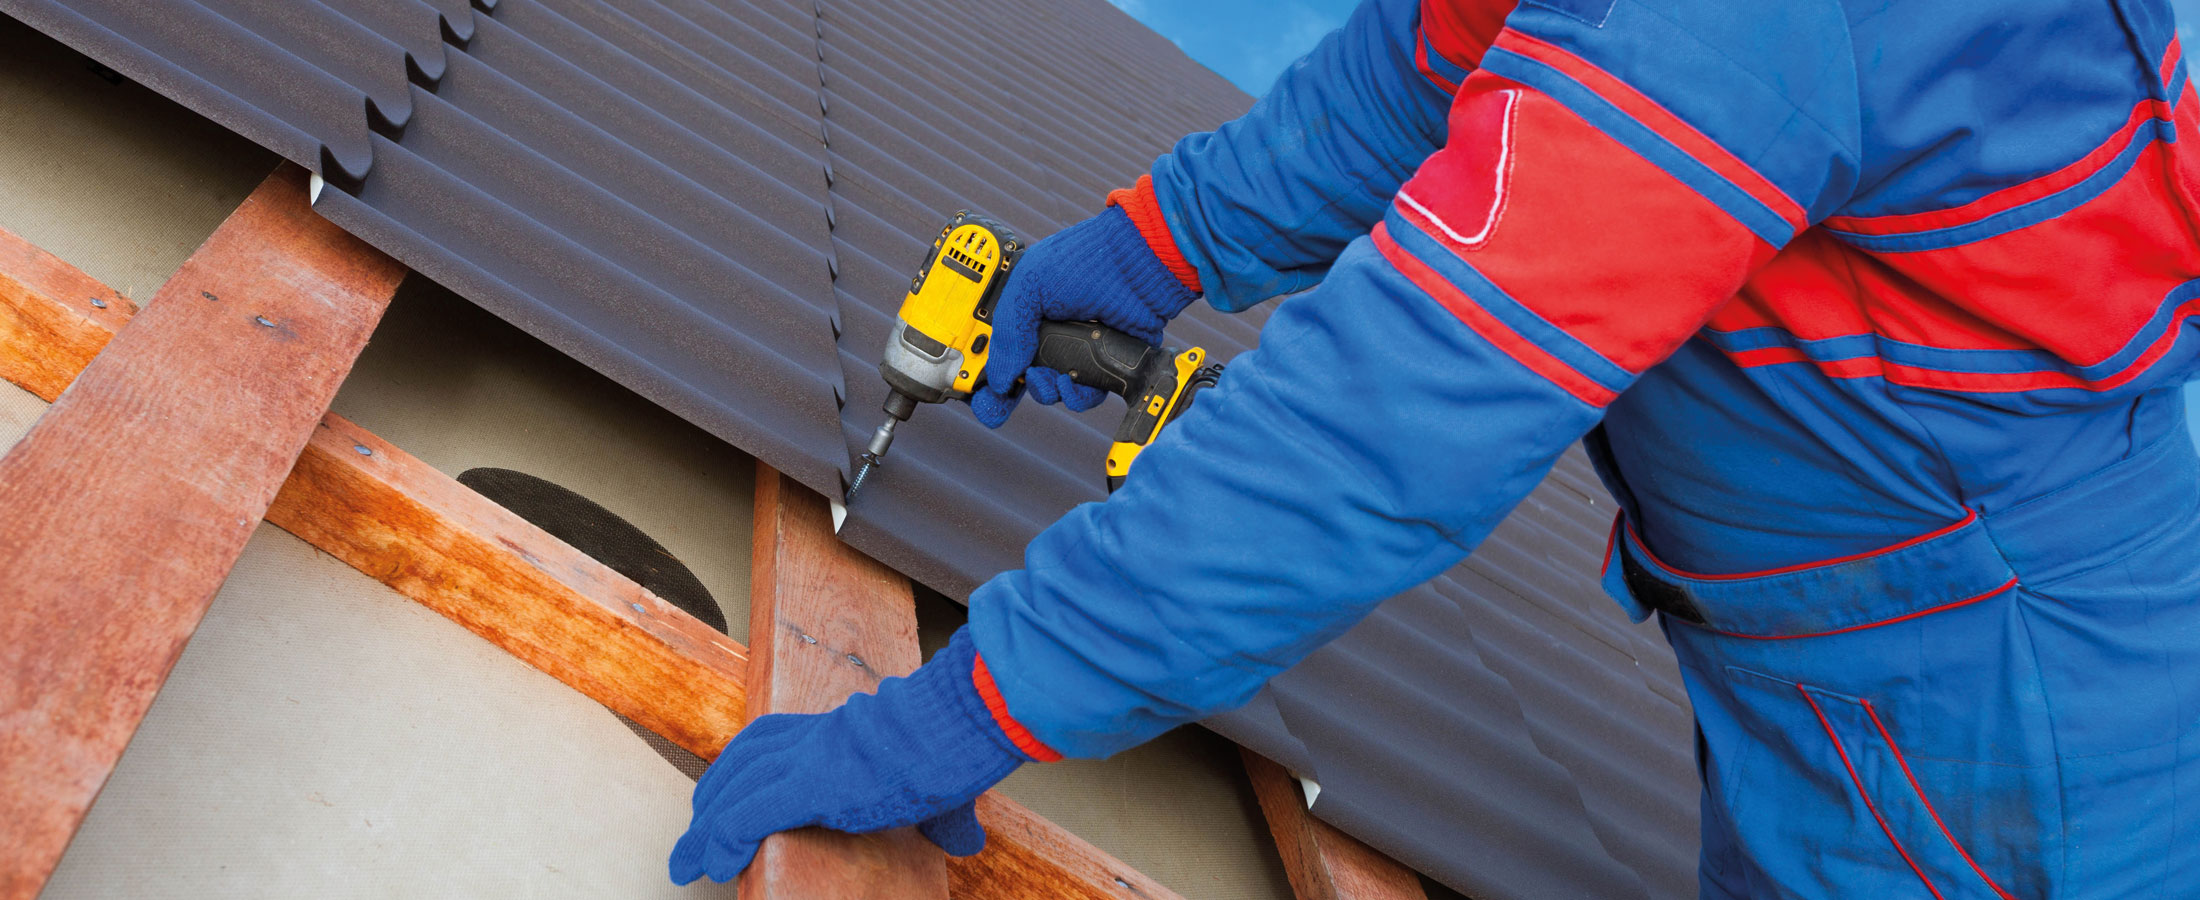 Class 3 Vs Class 4 Roofing Fasteners Youngman Roofing